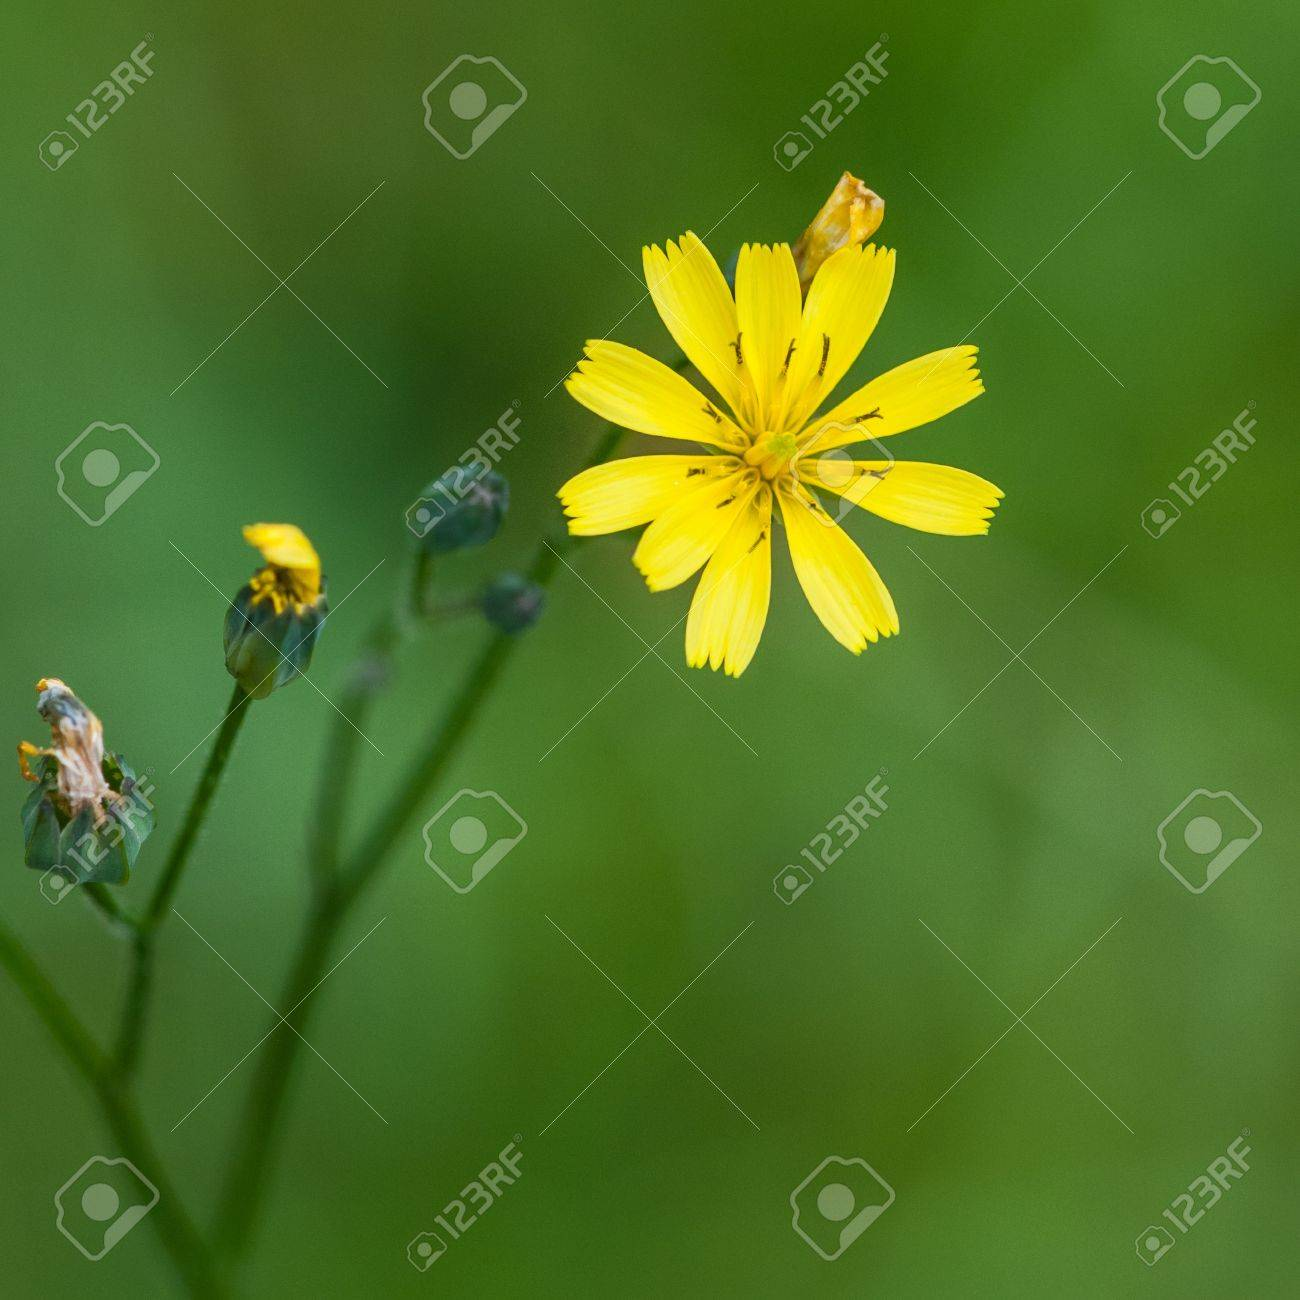 A Close Up Shot Of A Small Yellow Weed Against A Green Lawn Stock